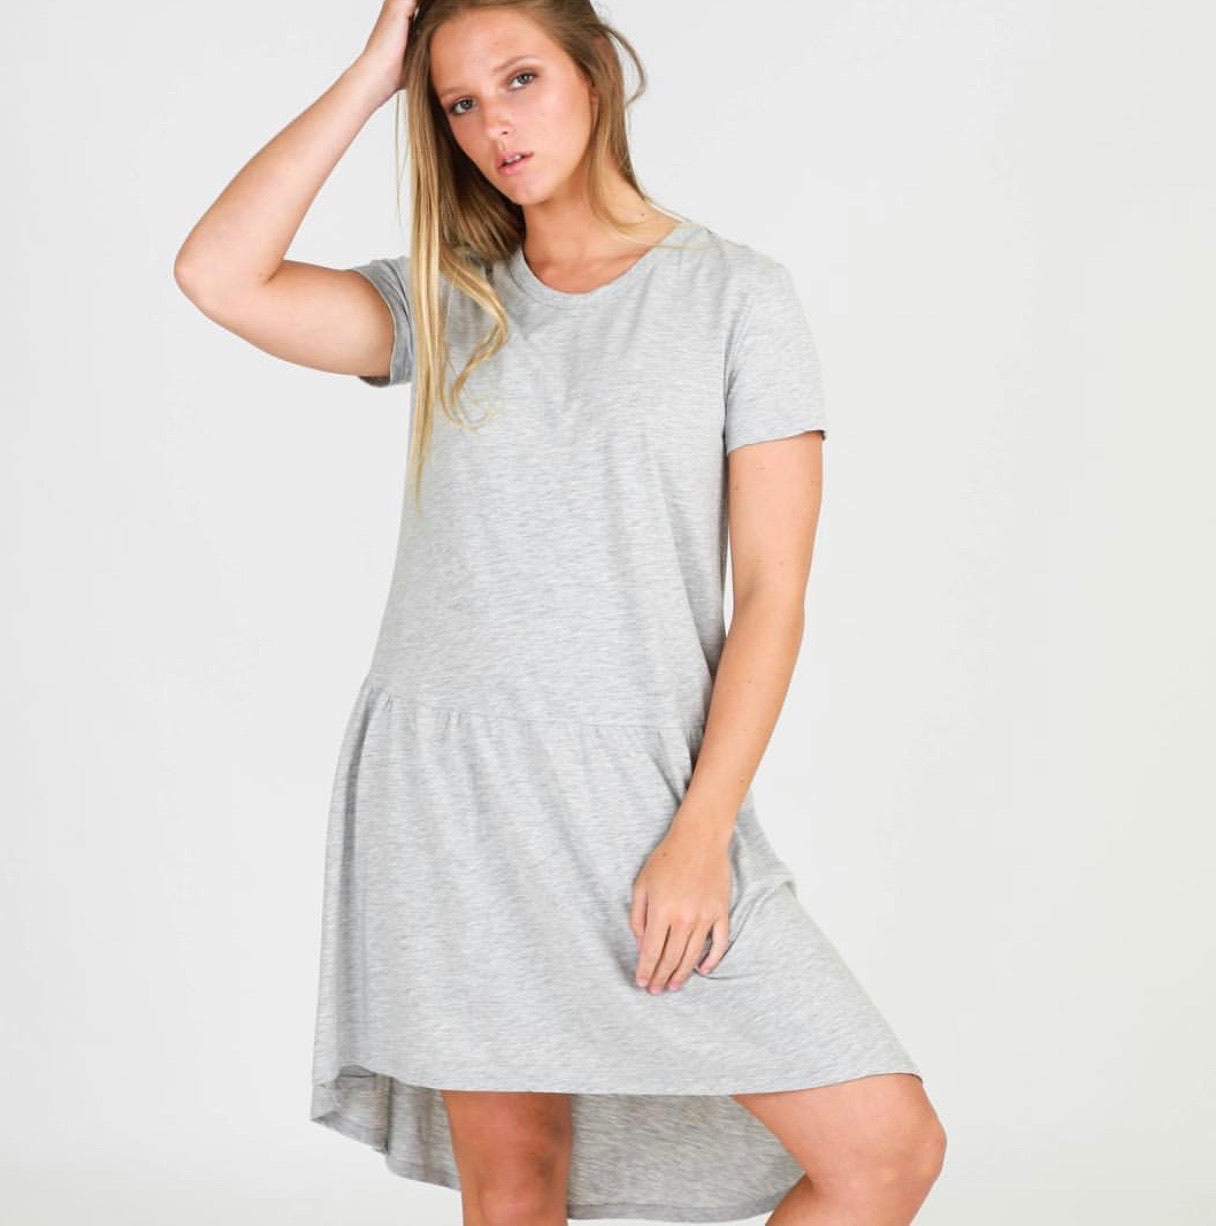 Jasper Dress - Grey Marle